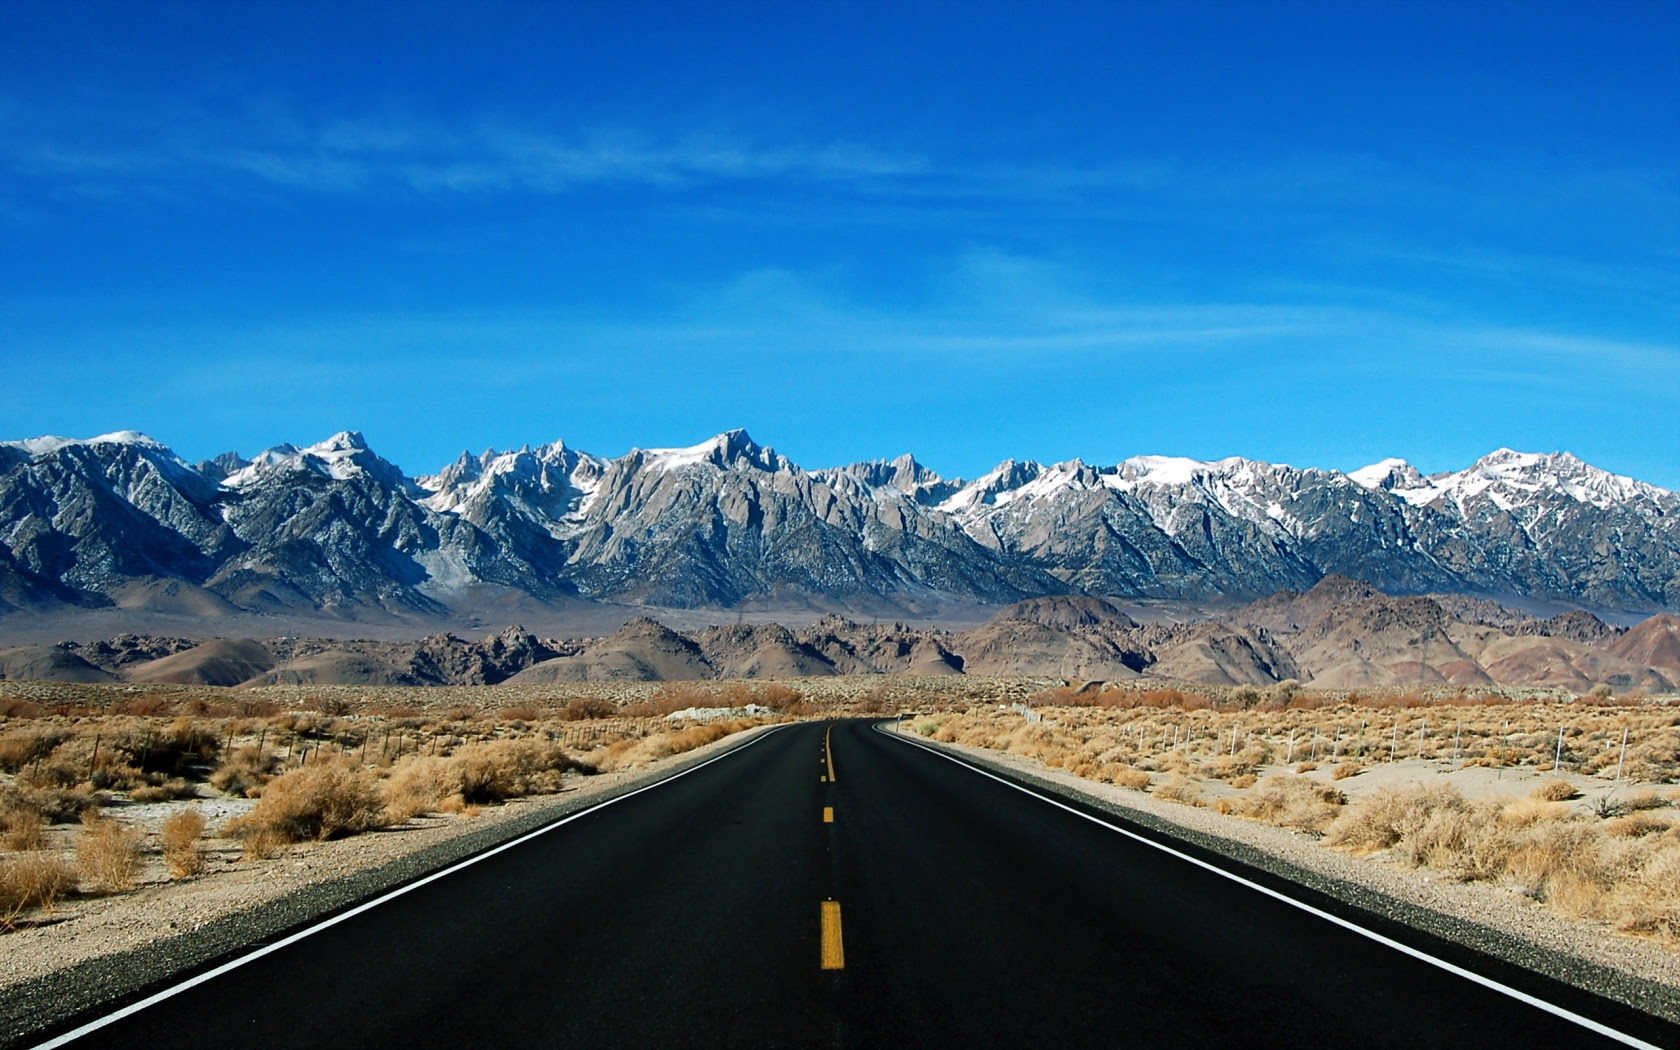 Sierra Nevada And Mount Whitney Wallpapers 1680x1050 620200 Images, Photos, Reviews